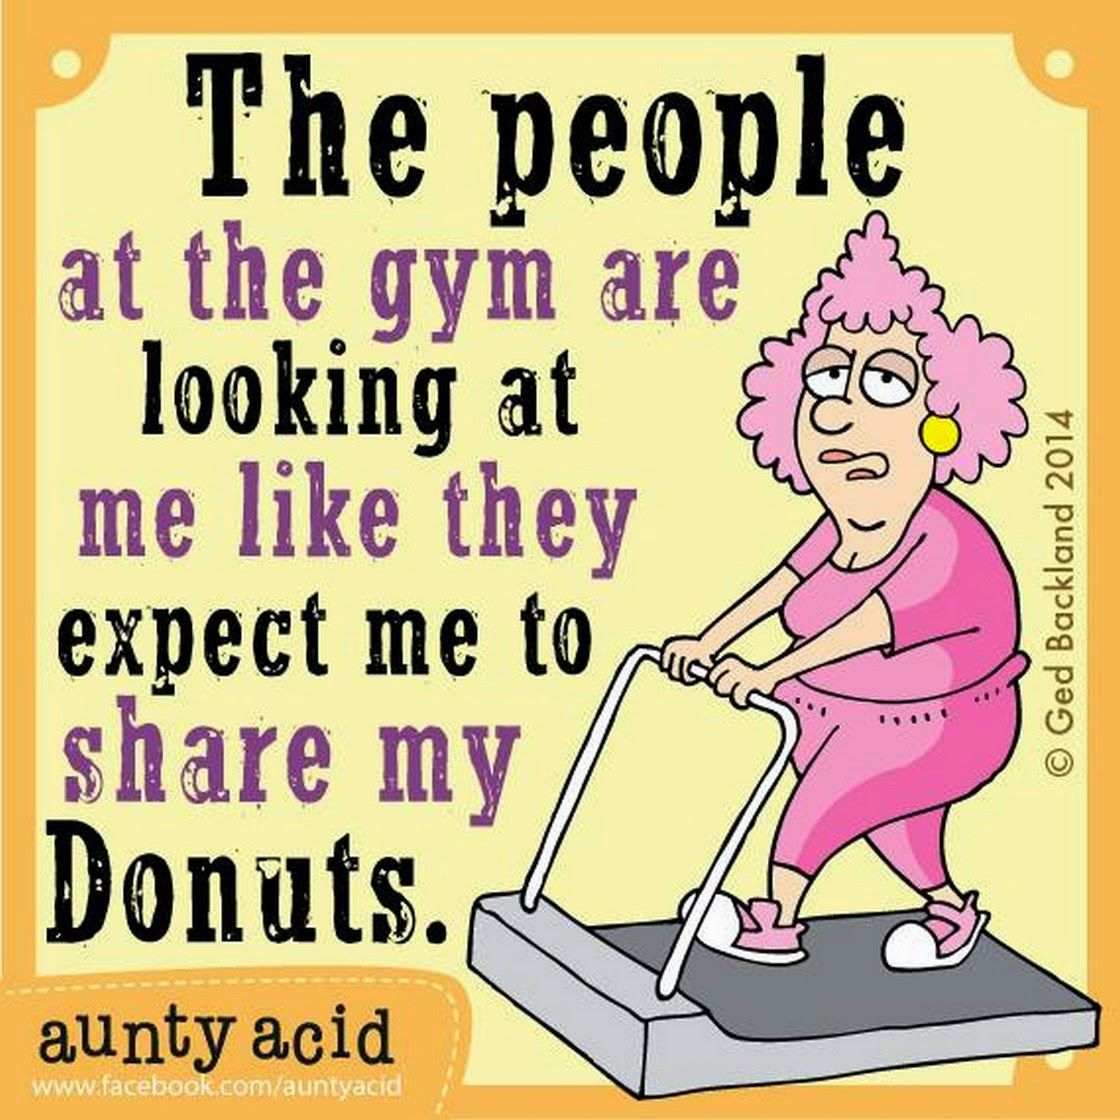 Chucku0027s Fun Page 2: Fun With Aunty Acid   15 Cartoons Pictures Gallery